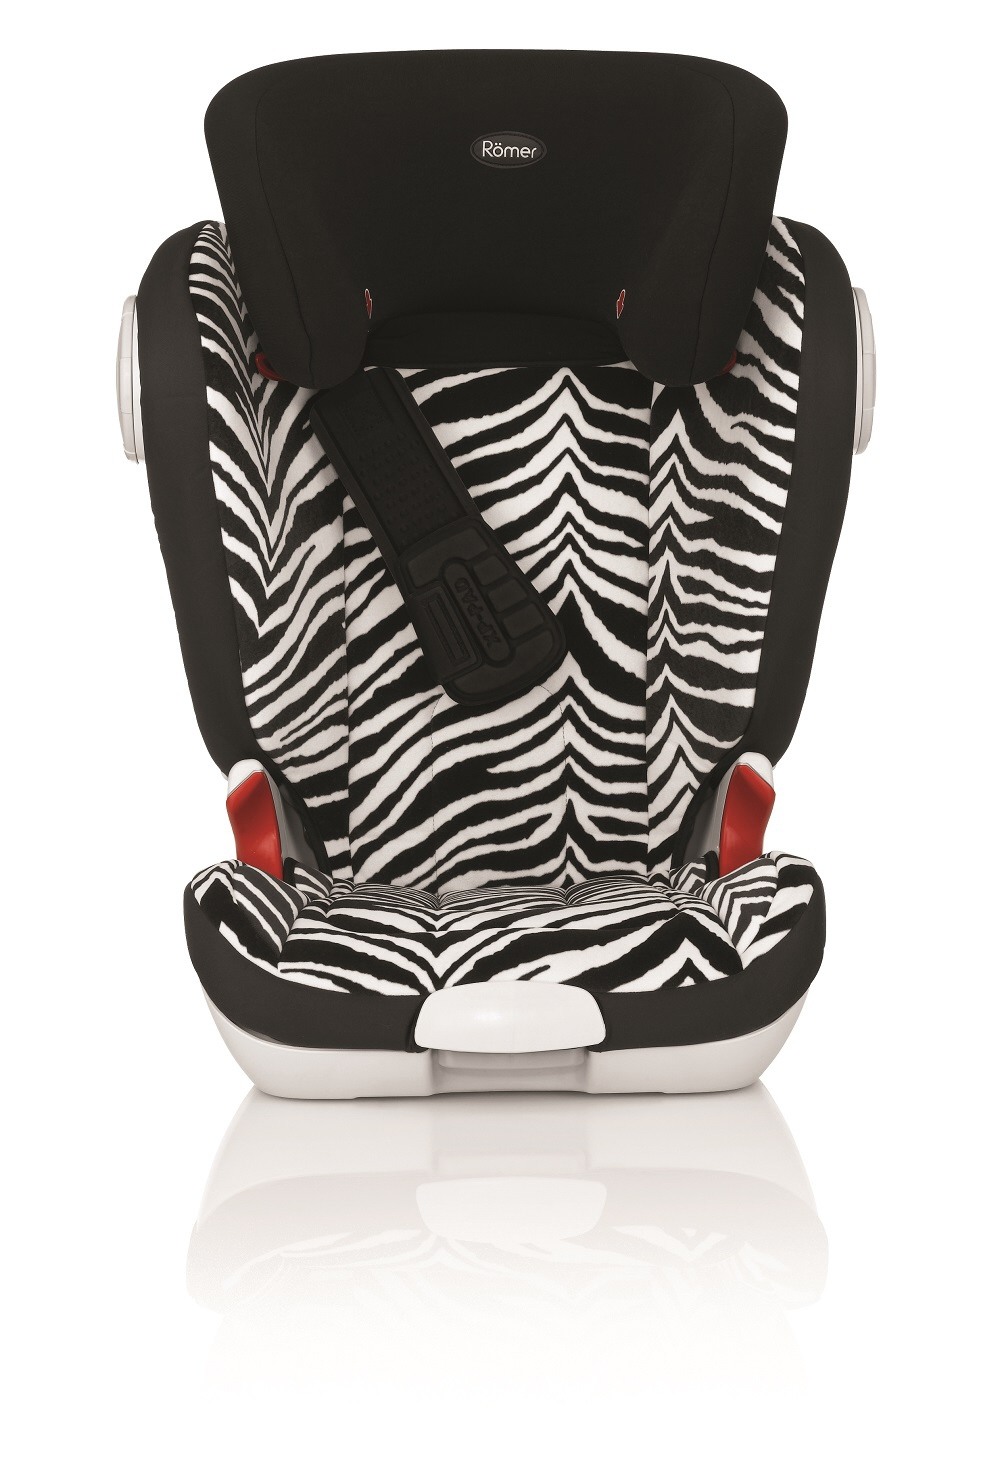 britax r mer car seat kidfix xp sict 2015 smart zebra buy at kidsroom car seats. Black Bedroom Furniture Sets. Home Design Ideas